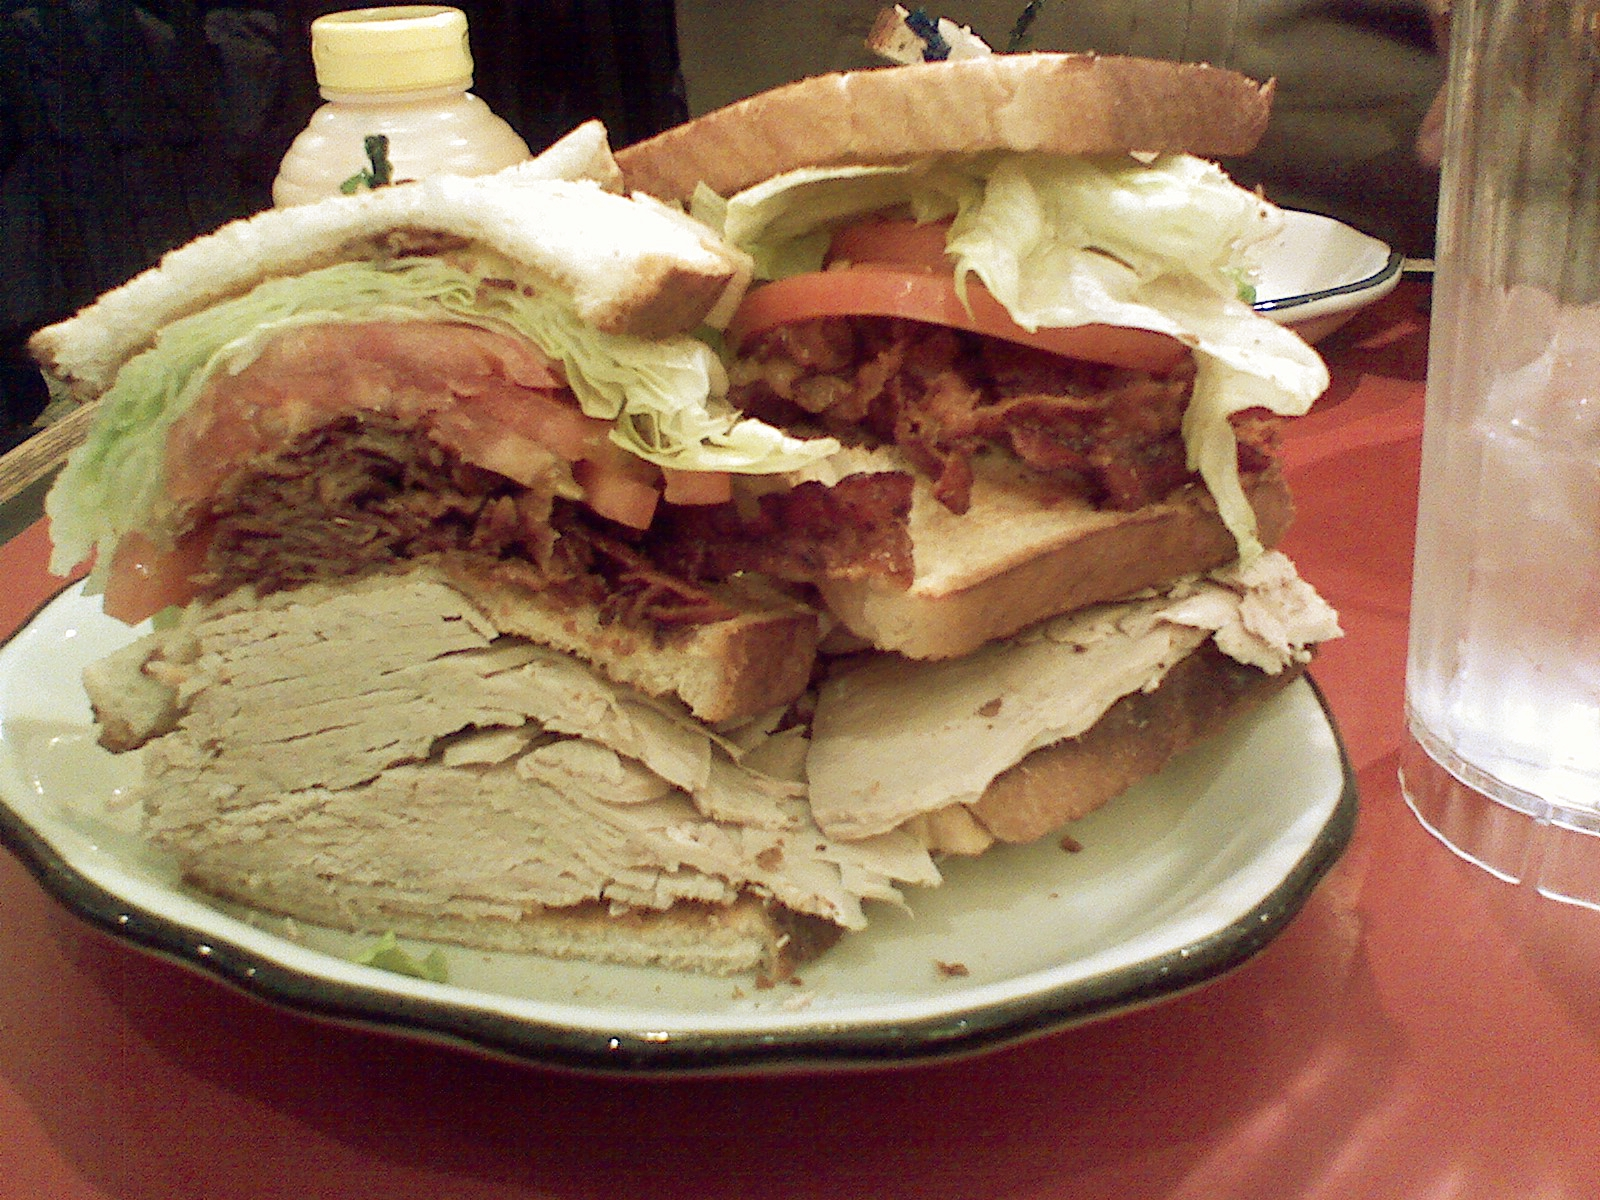 turkey club stages deli 7th ave new york ny on sandwiches